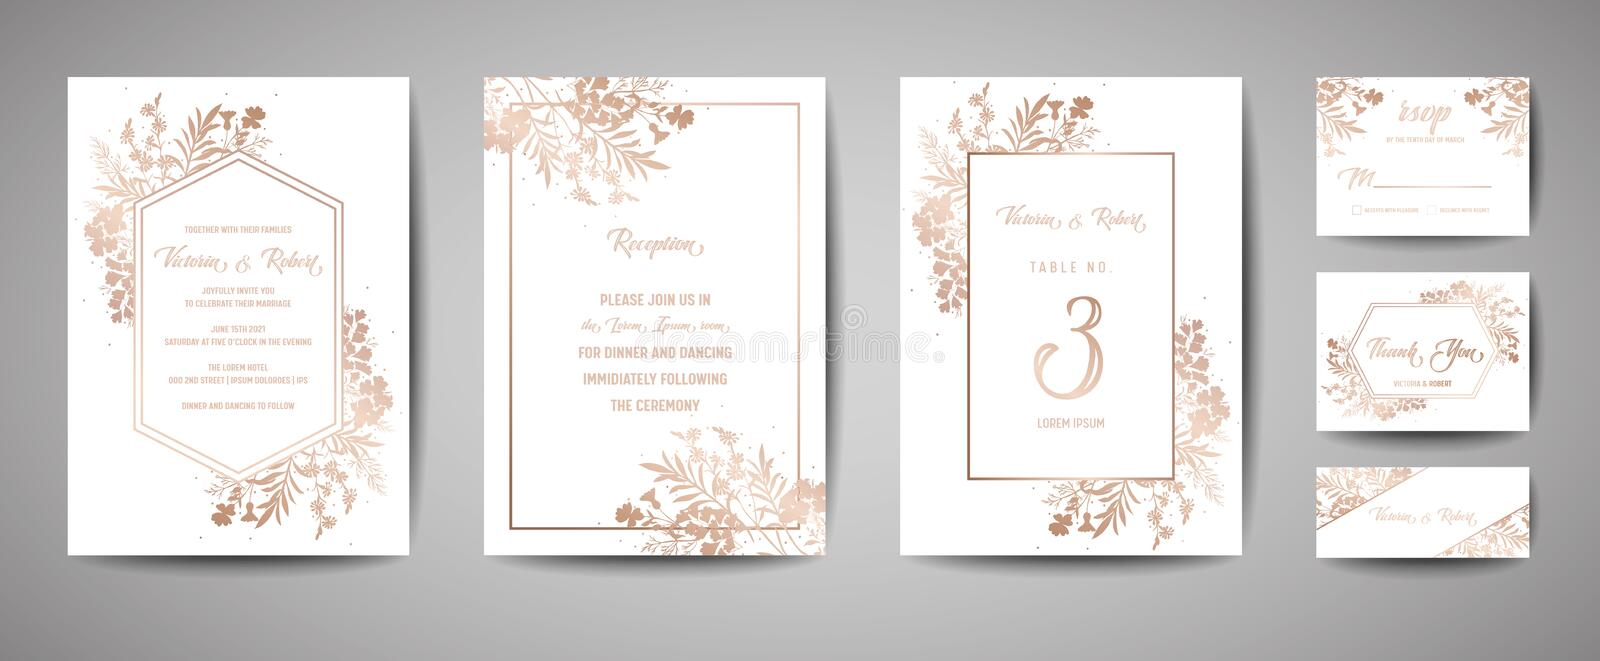 Luxury Wedding Save the Date, Invitation Navy Cards Collection with Gold Foil Flowers and Leaves and Wreath trendy cover. Luxury Wedding Save the Date vector illustration